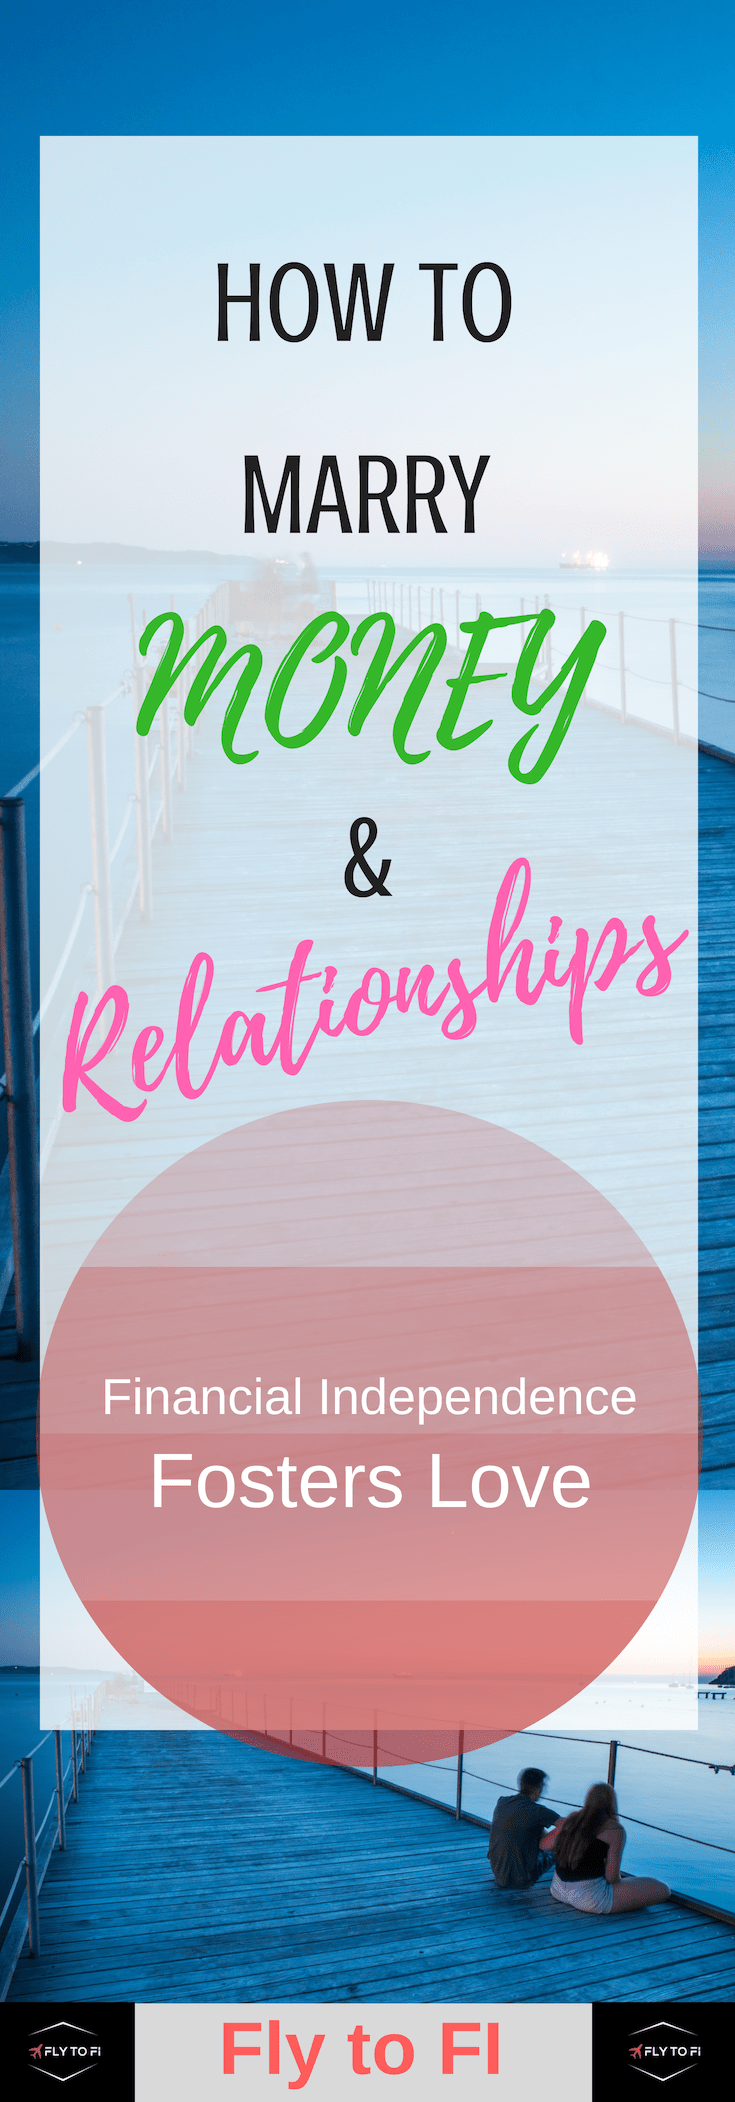 Financial Independence and Relationships